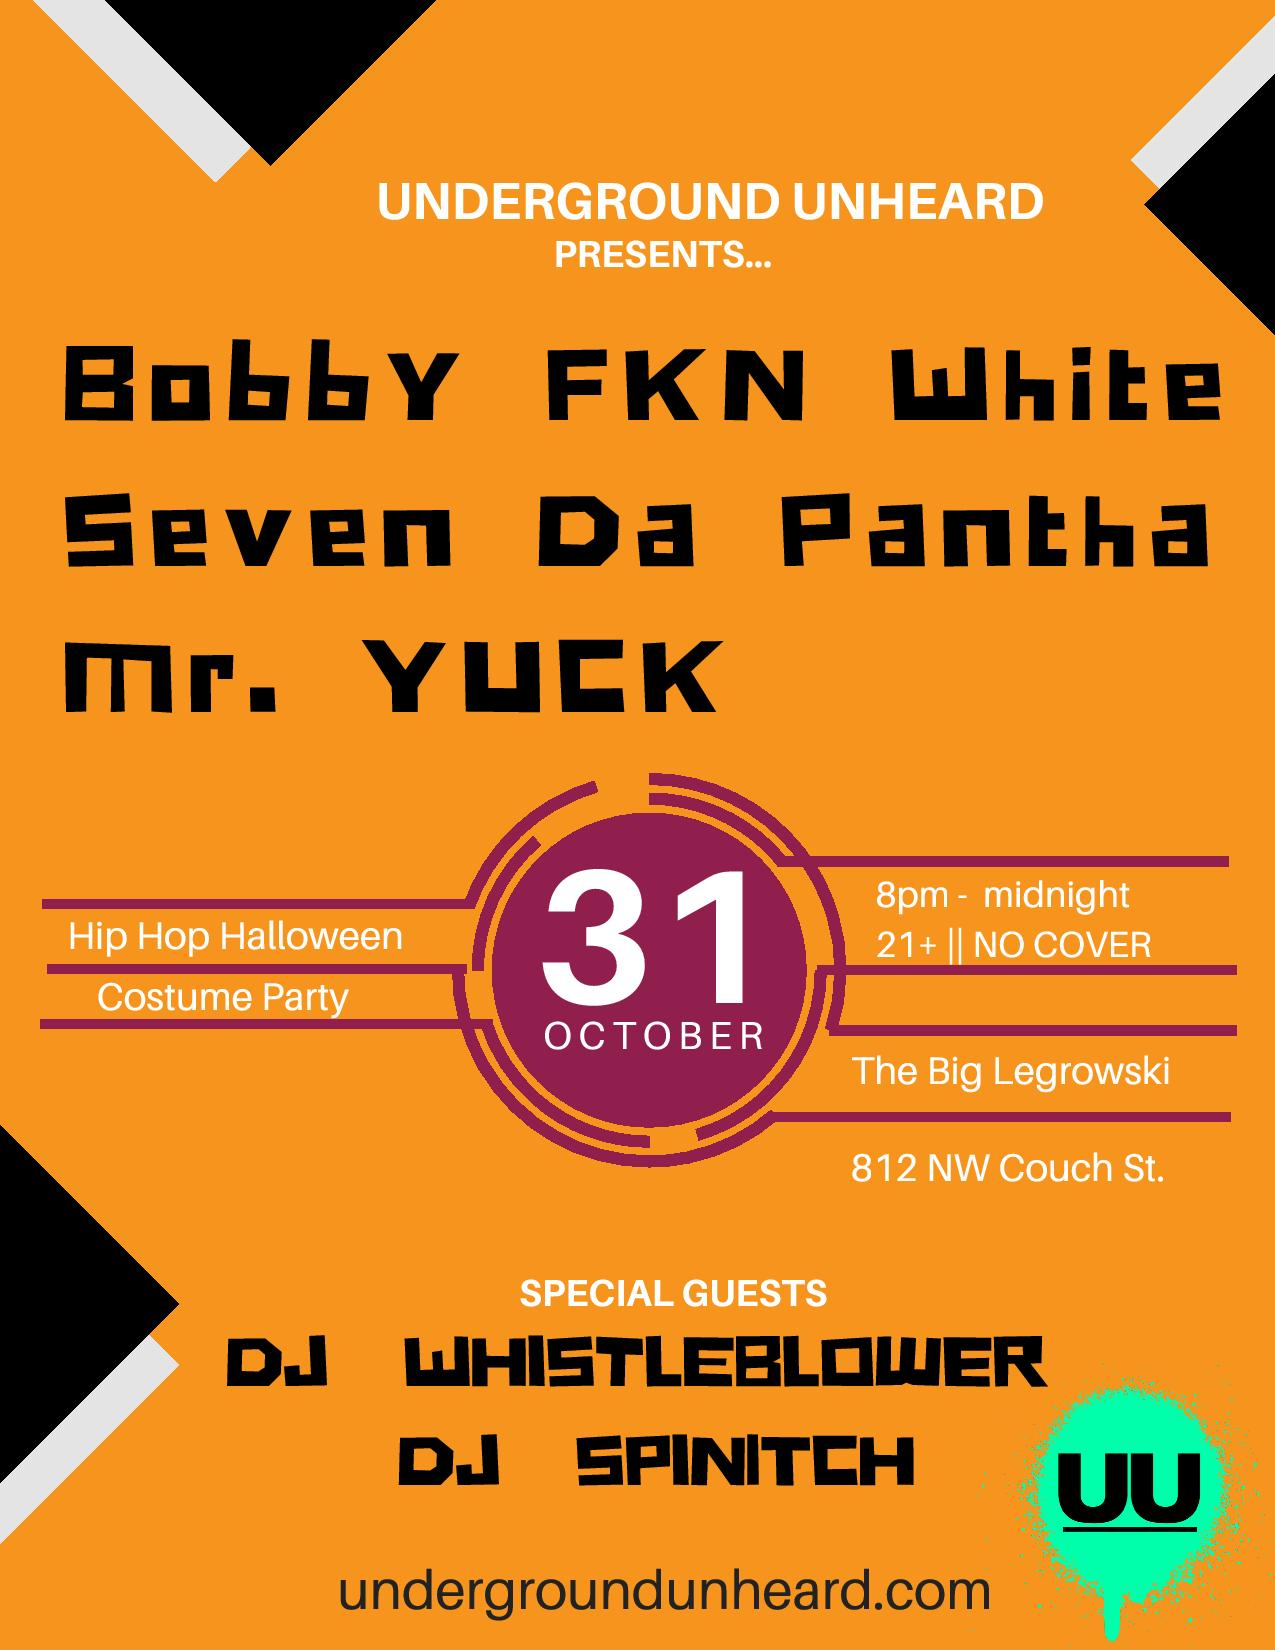 """A Hip Hop Halloween 2019"" FREE SHOW w/ Bobby FKN White, Seven da Pantha and more!"